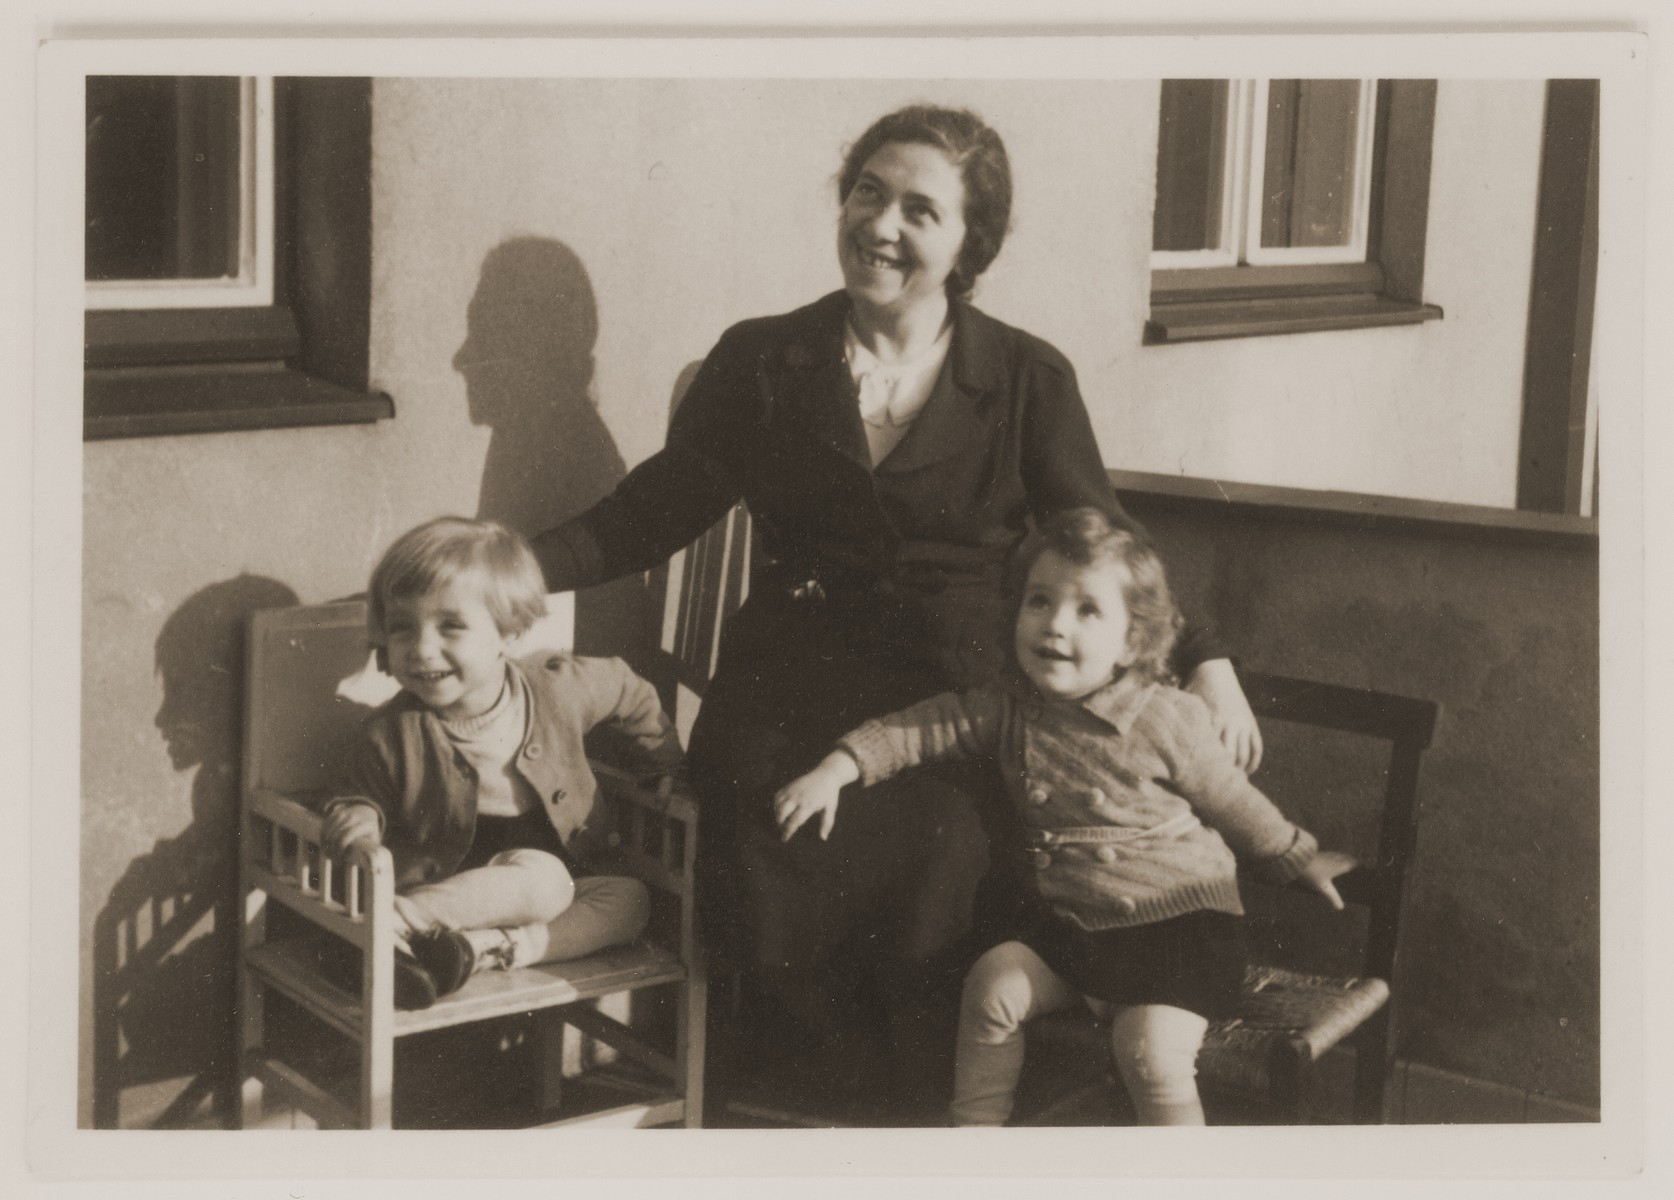 Ita Guttmann with her twin children, Rene and Renate.